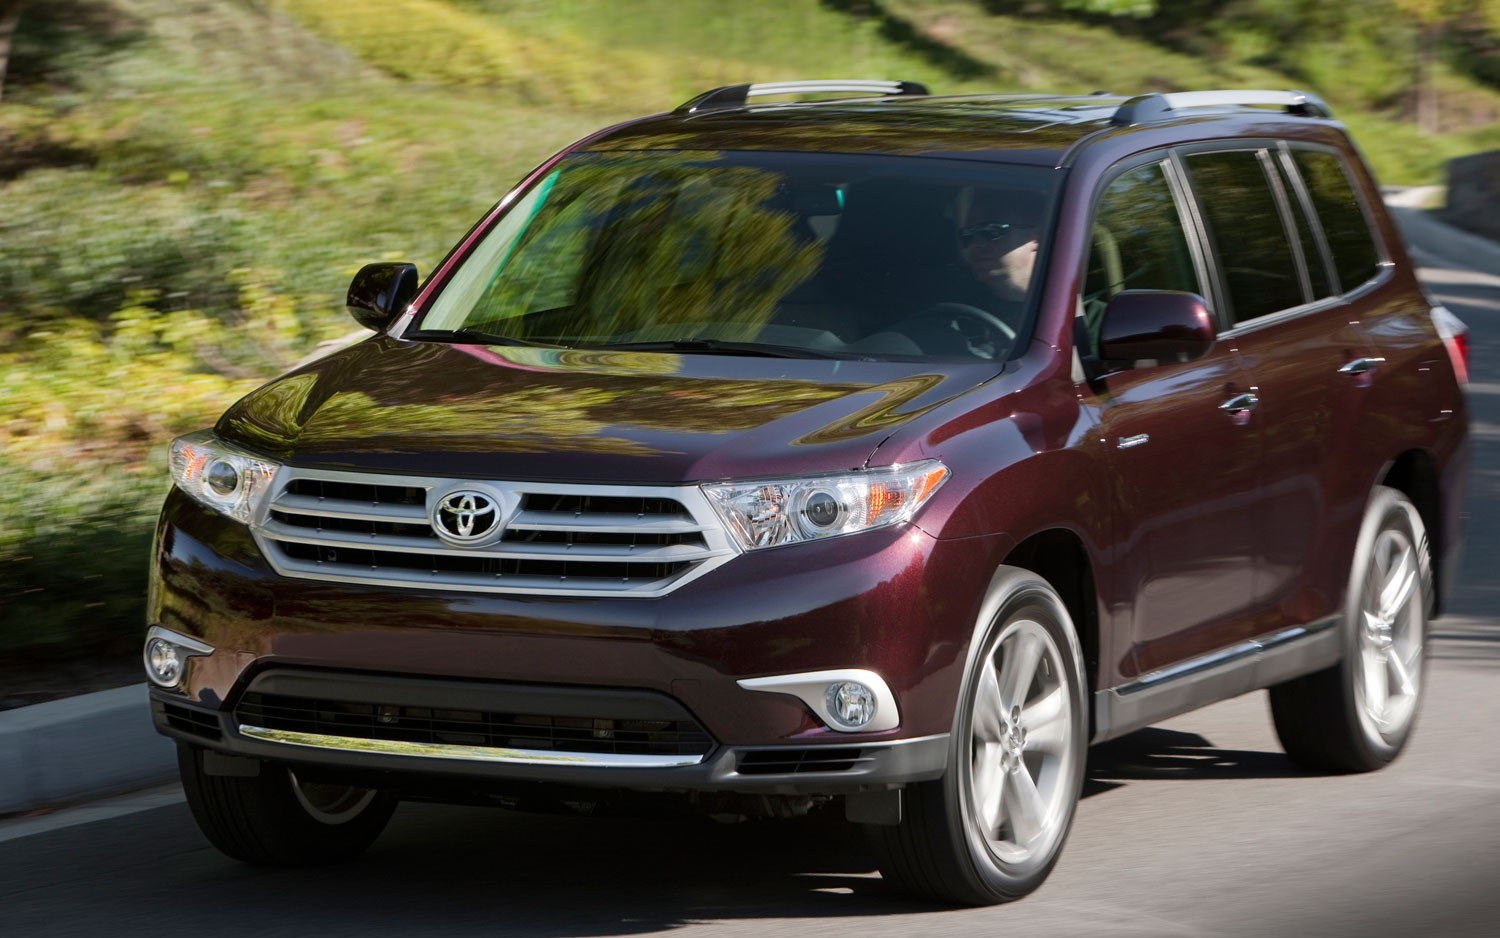 front view Toyota Highlander Hybrid Limited 2016 toyota highlander hybrid limited 2016 suv drive  at eliteediting.co